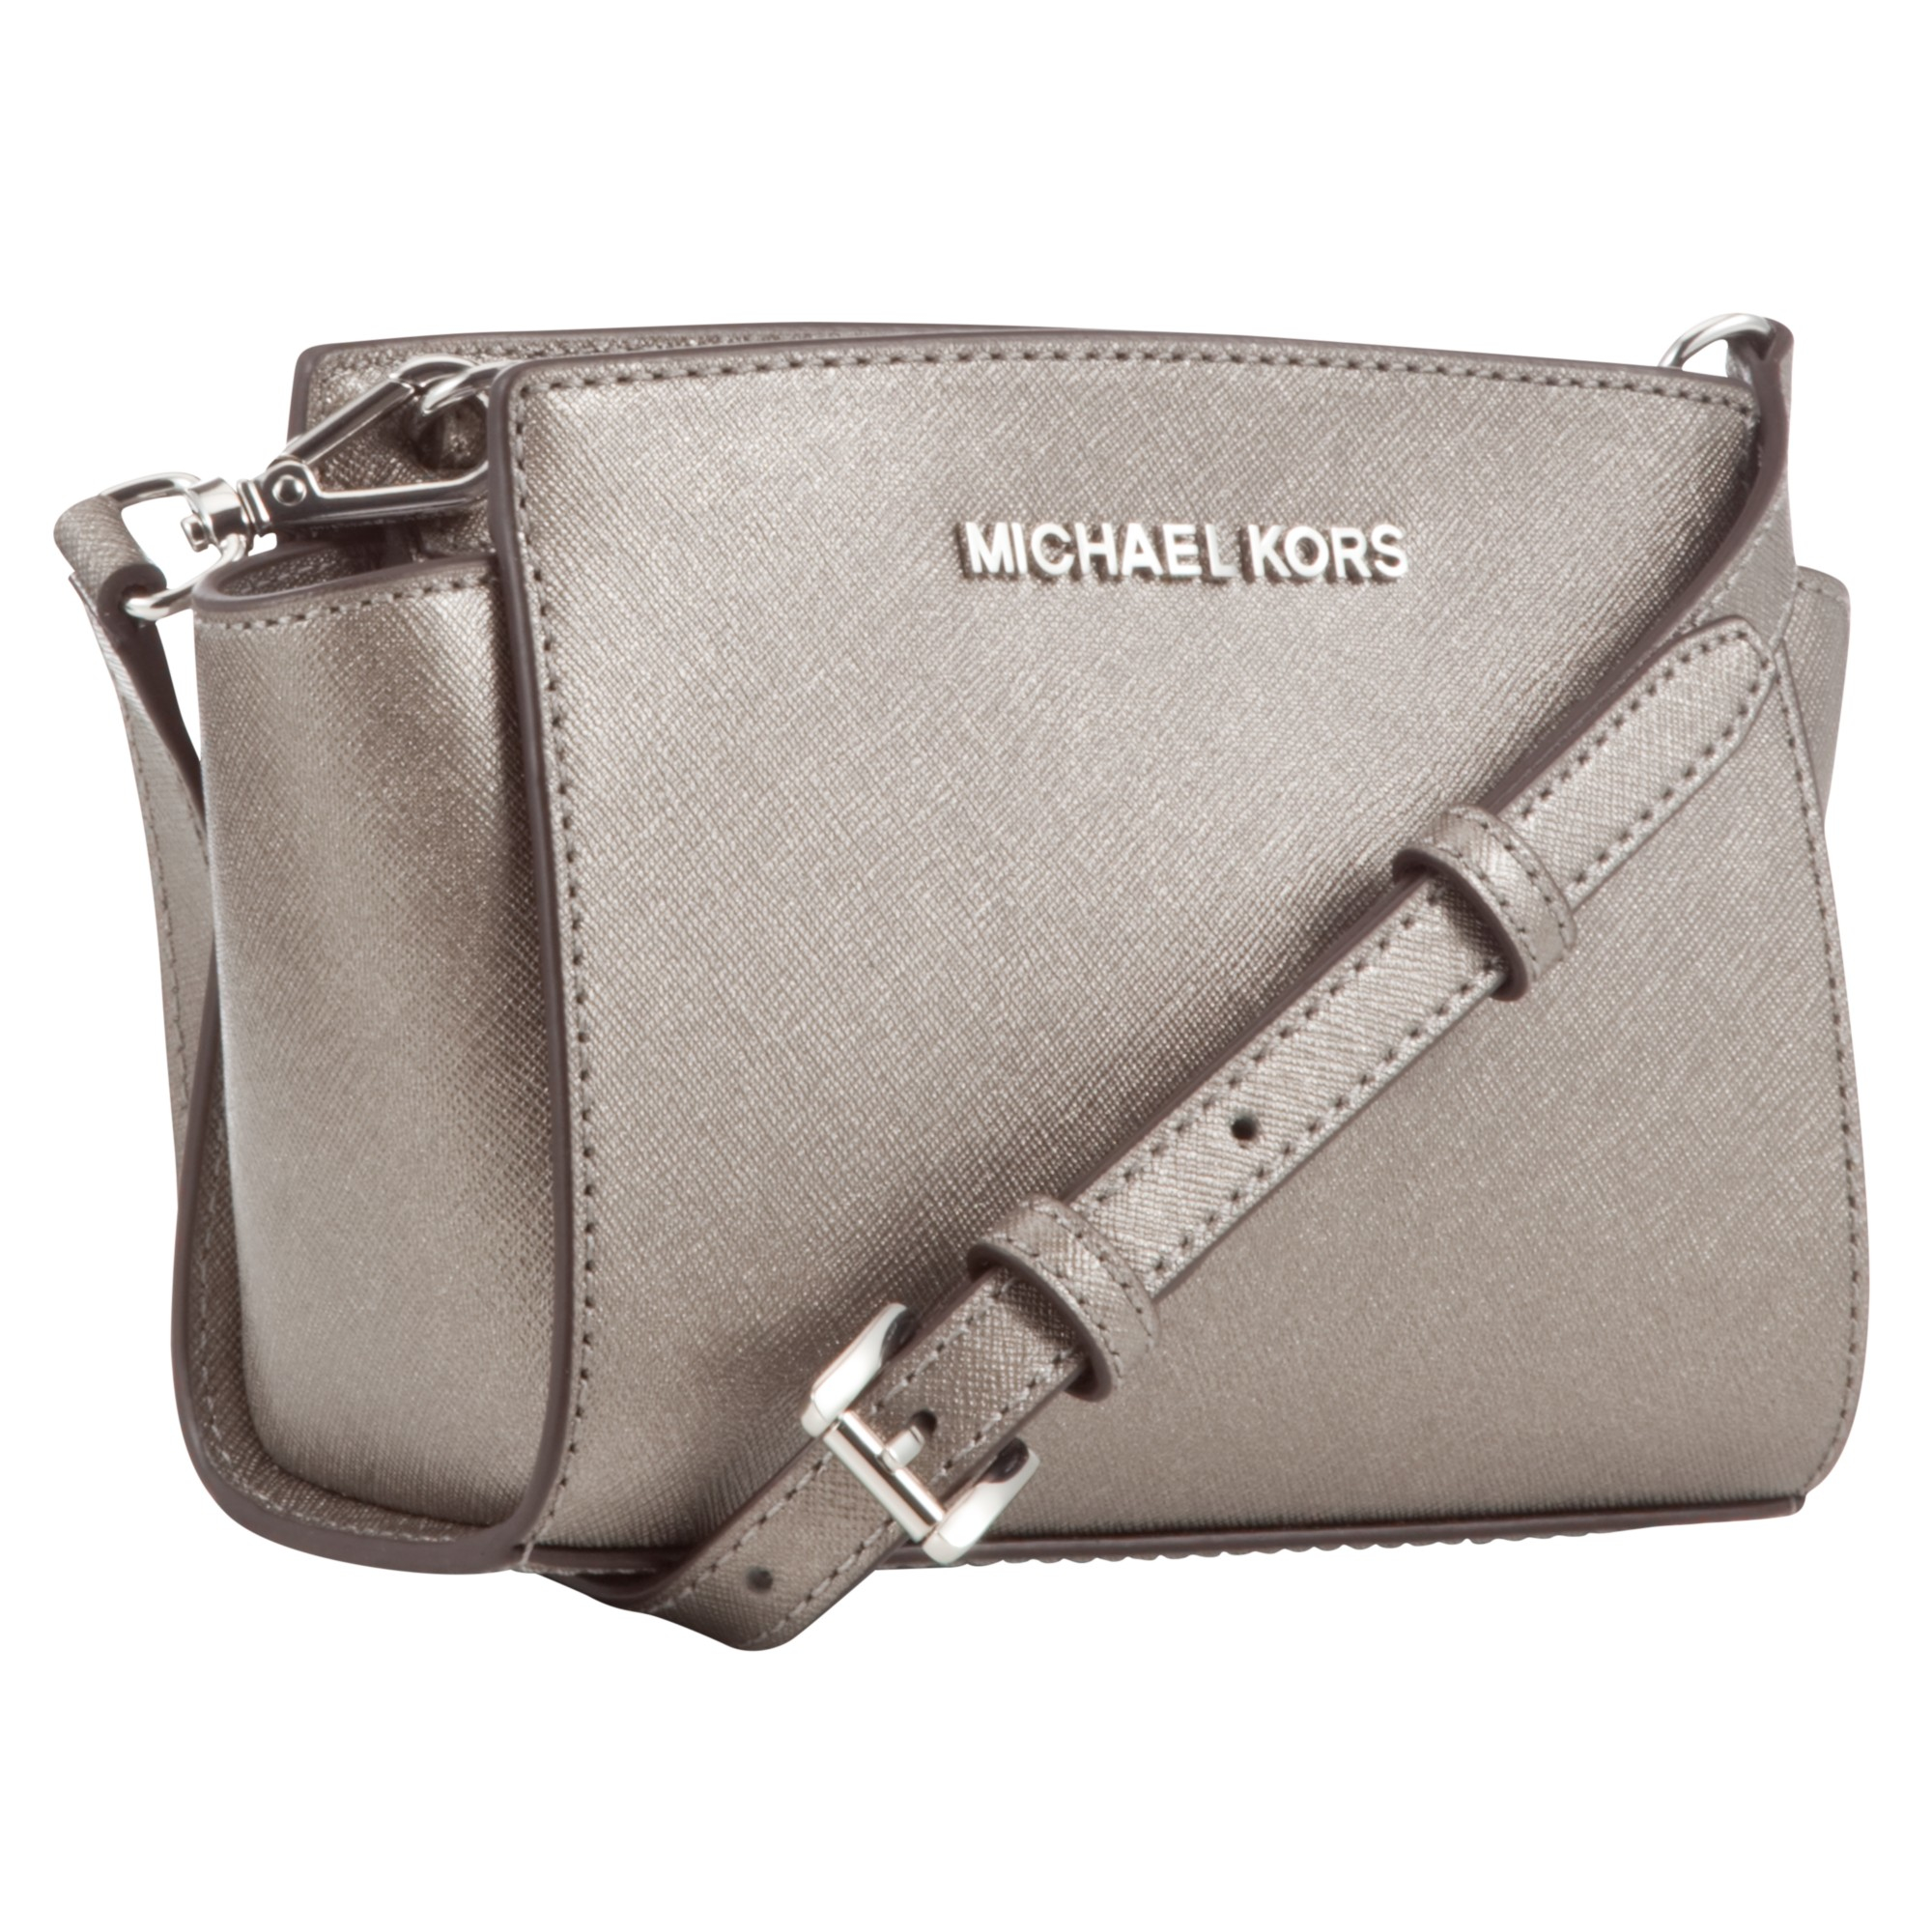 MICHAEL Michael Kors Selma Saffiano Leather Mini Messenger Bag in ... 9b2c251b6553d